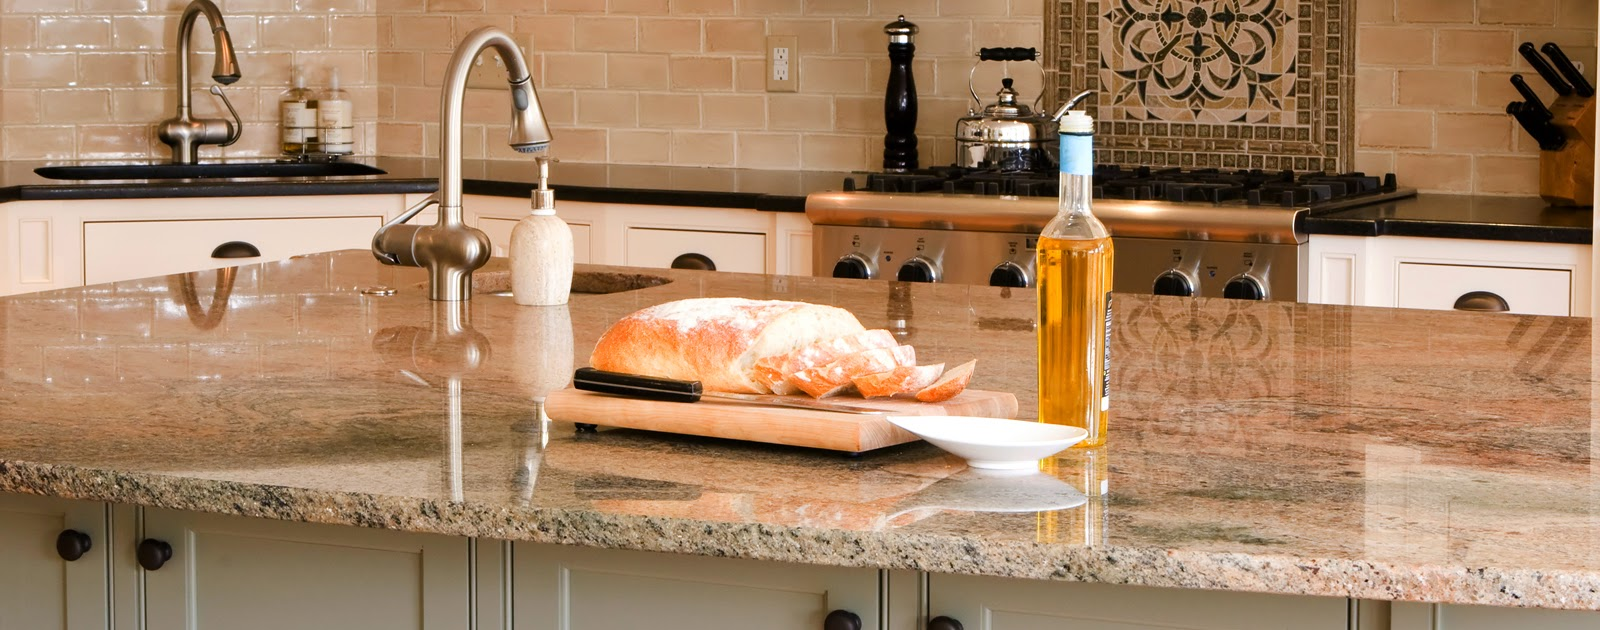 The Fabulous Discount Granite Countertop Image